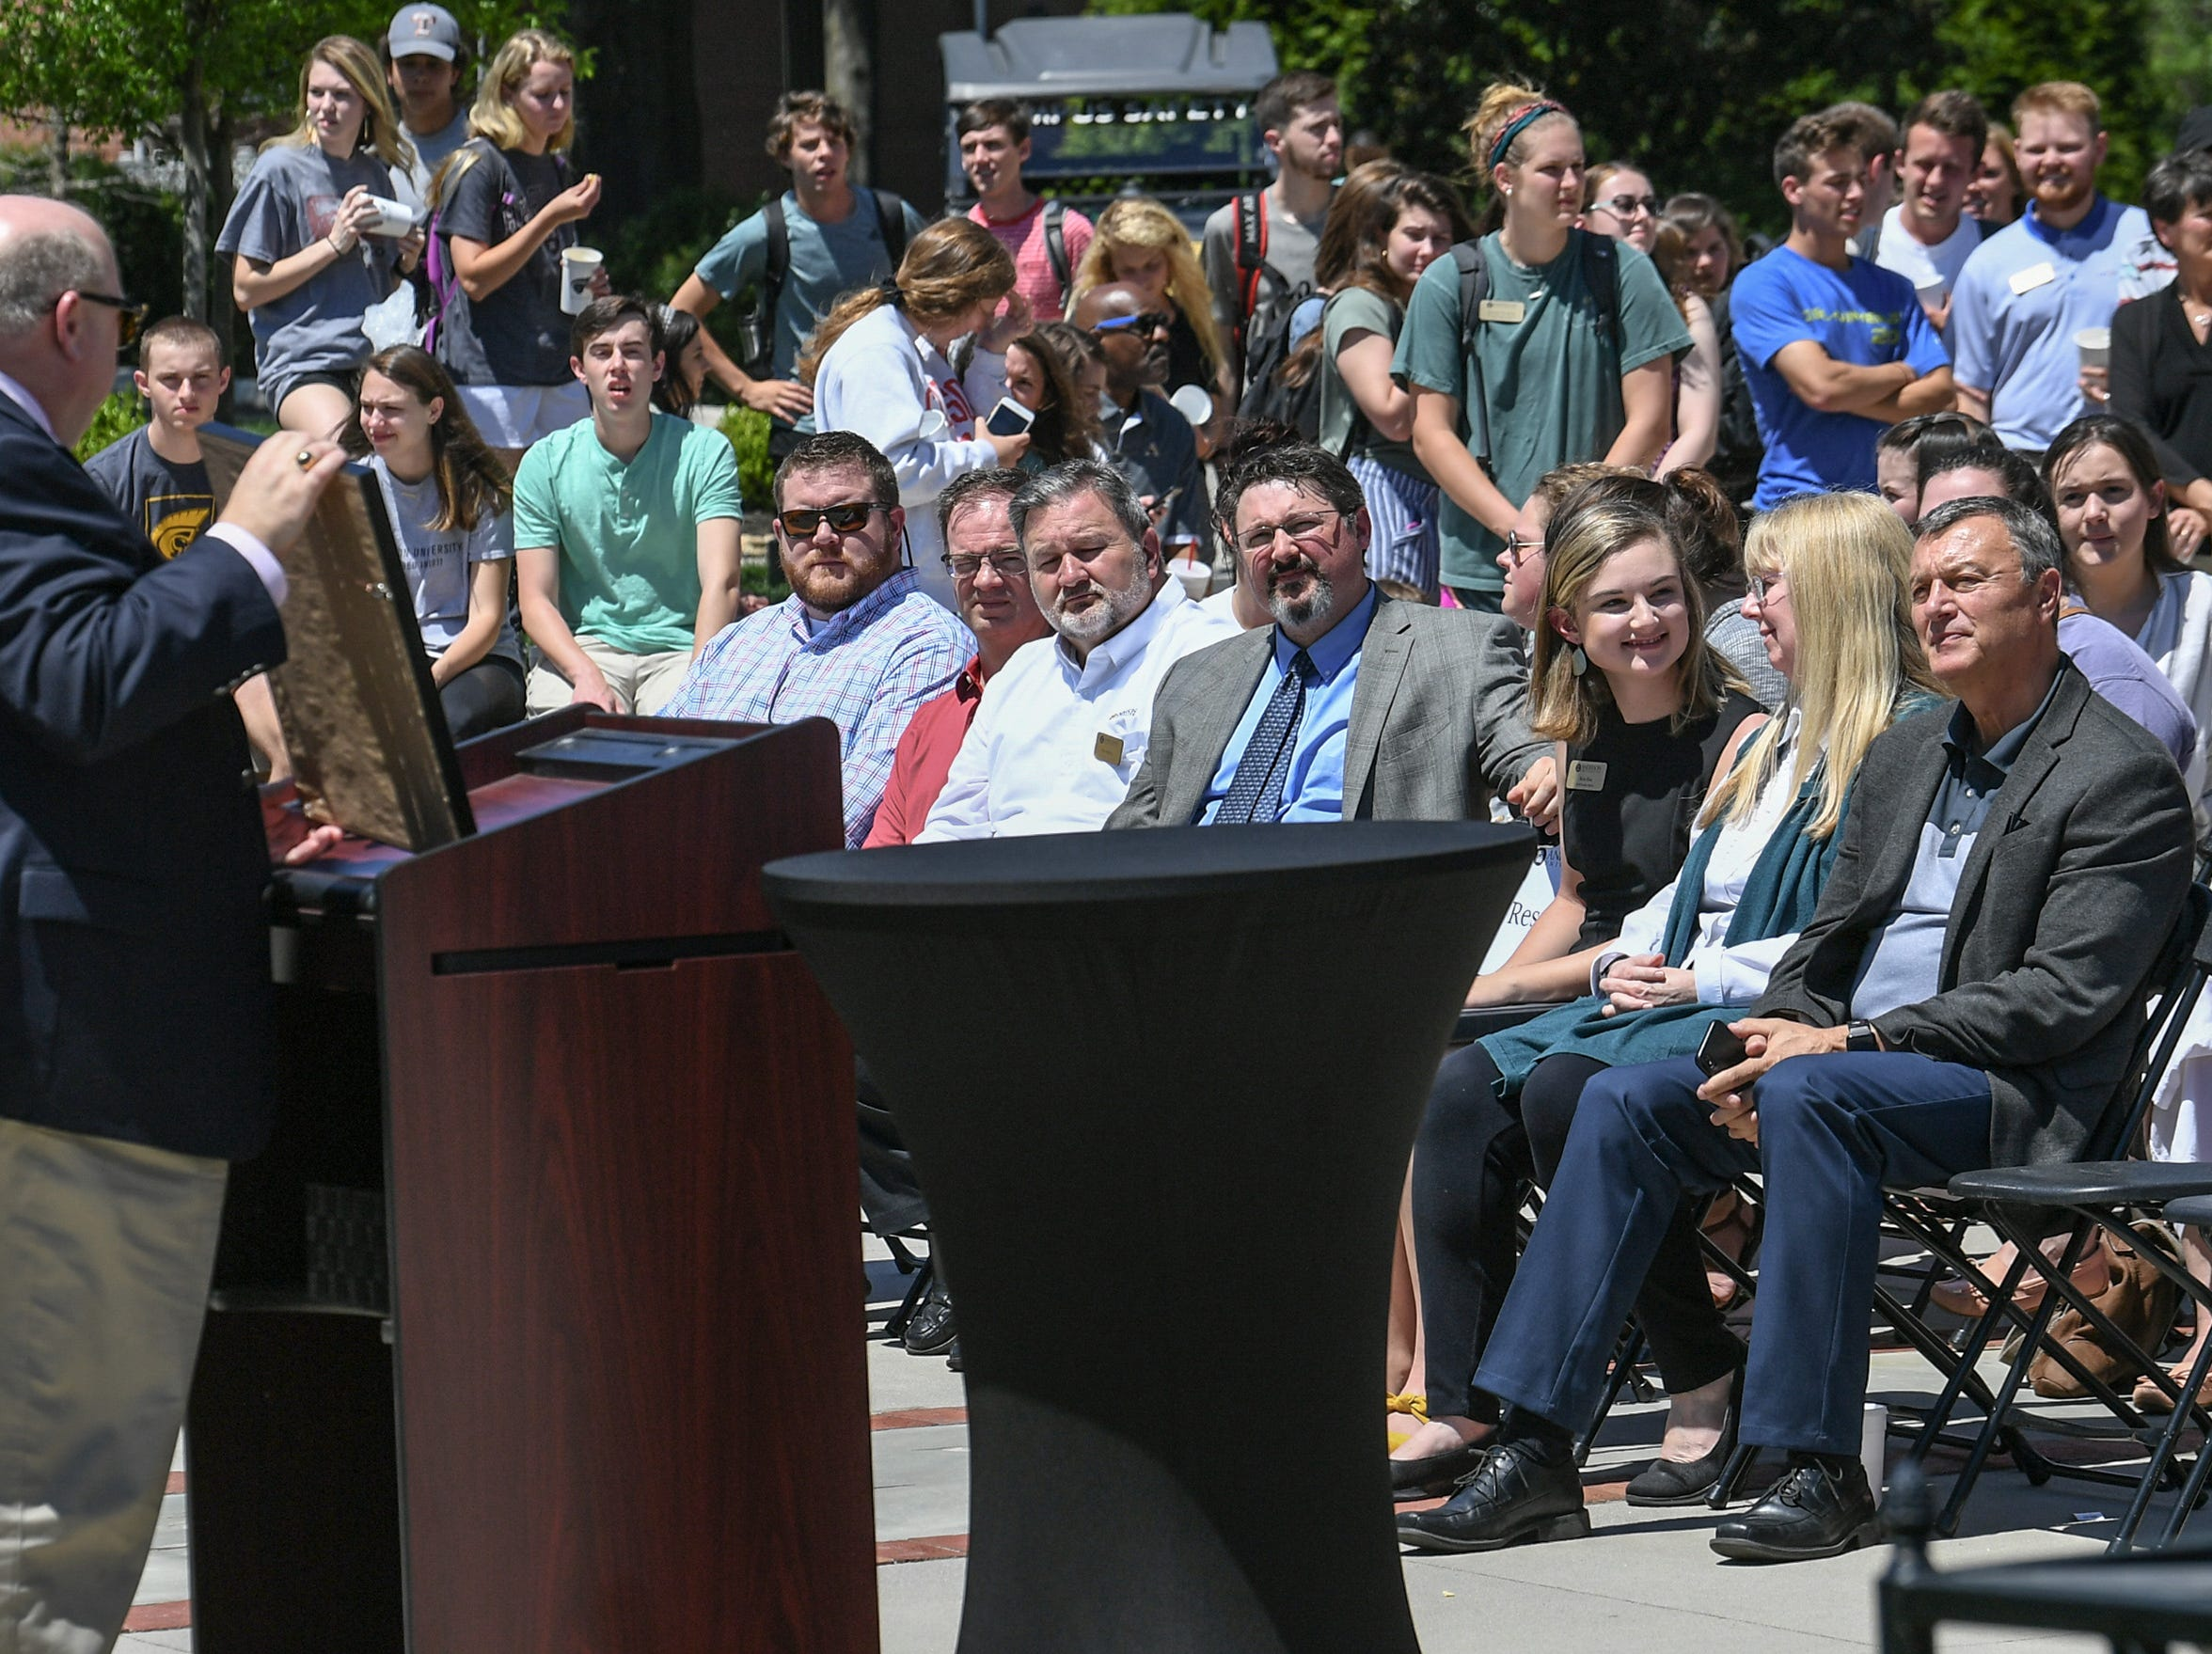 President Evans Whitaker holds The Apple Distinguished School award at the event in front of the G. Ross Anderson Student Center at Anderson University in Anderson Tuesday. It was the third time receiving the distinction since the school started a digital learning initiative in 2011.